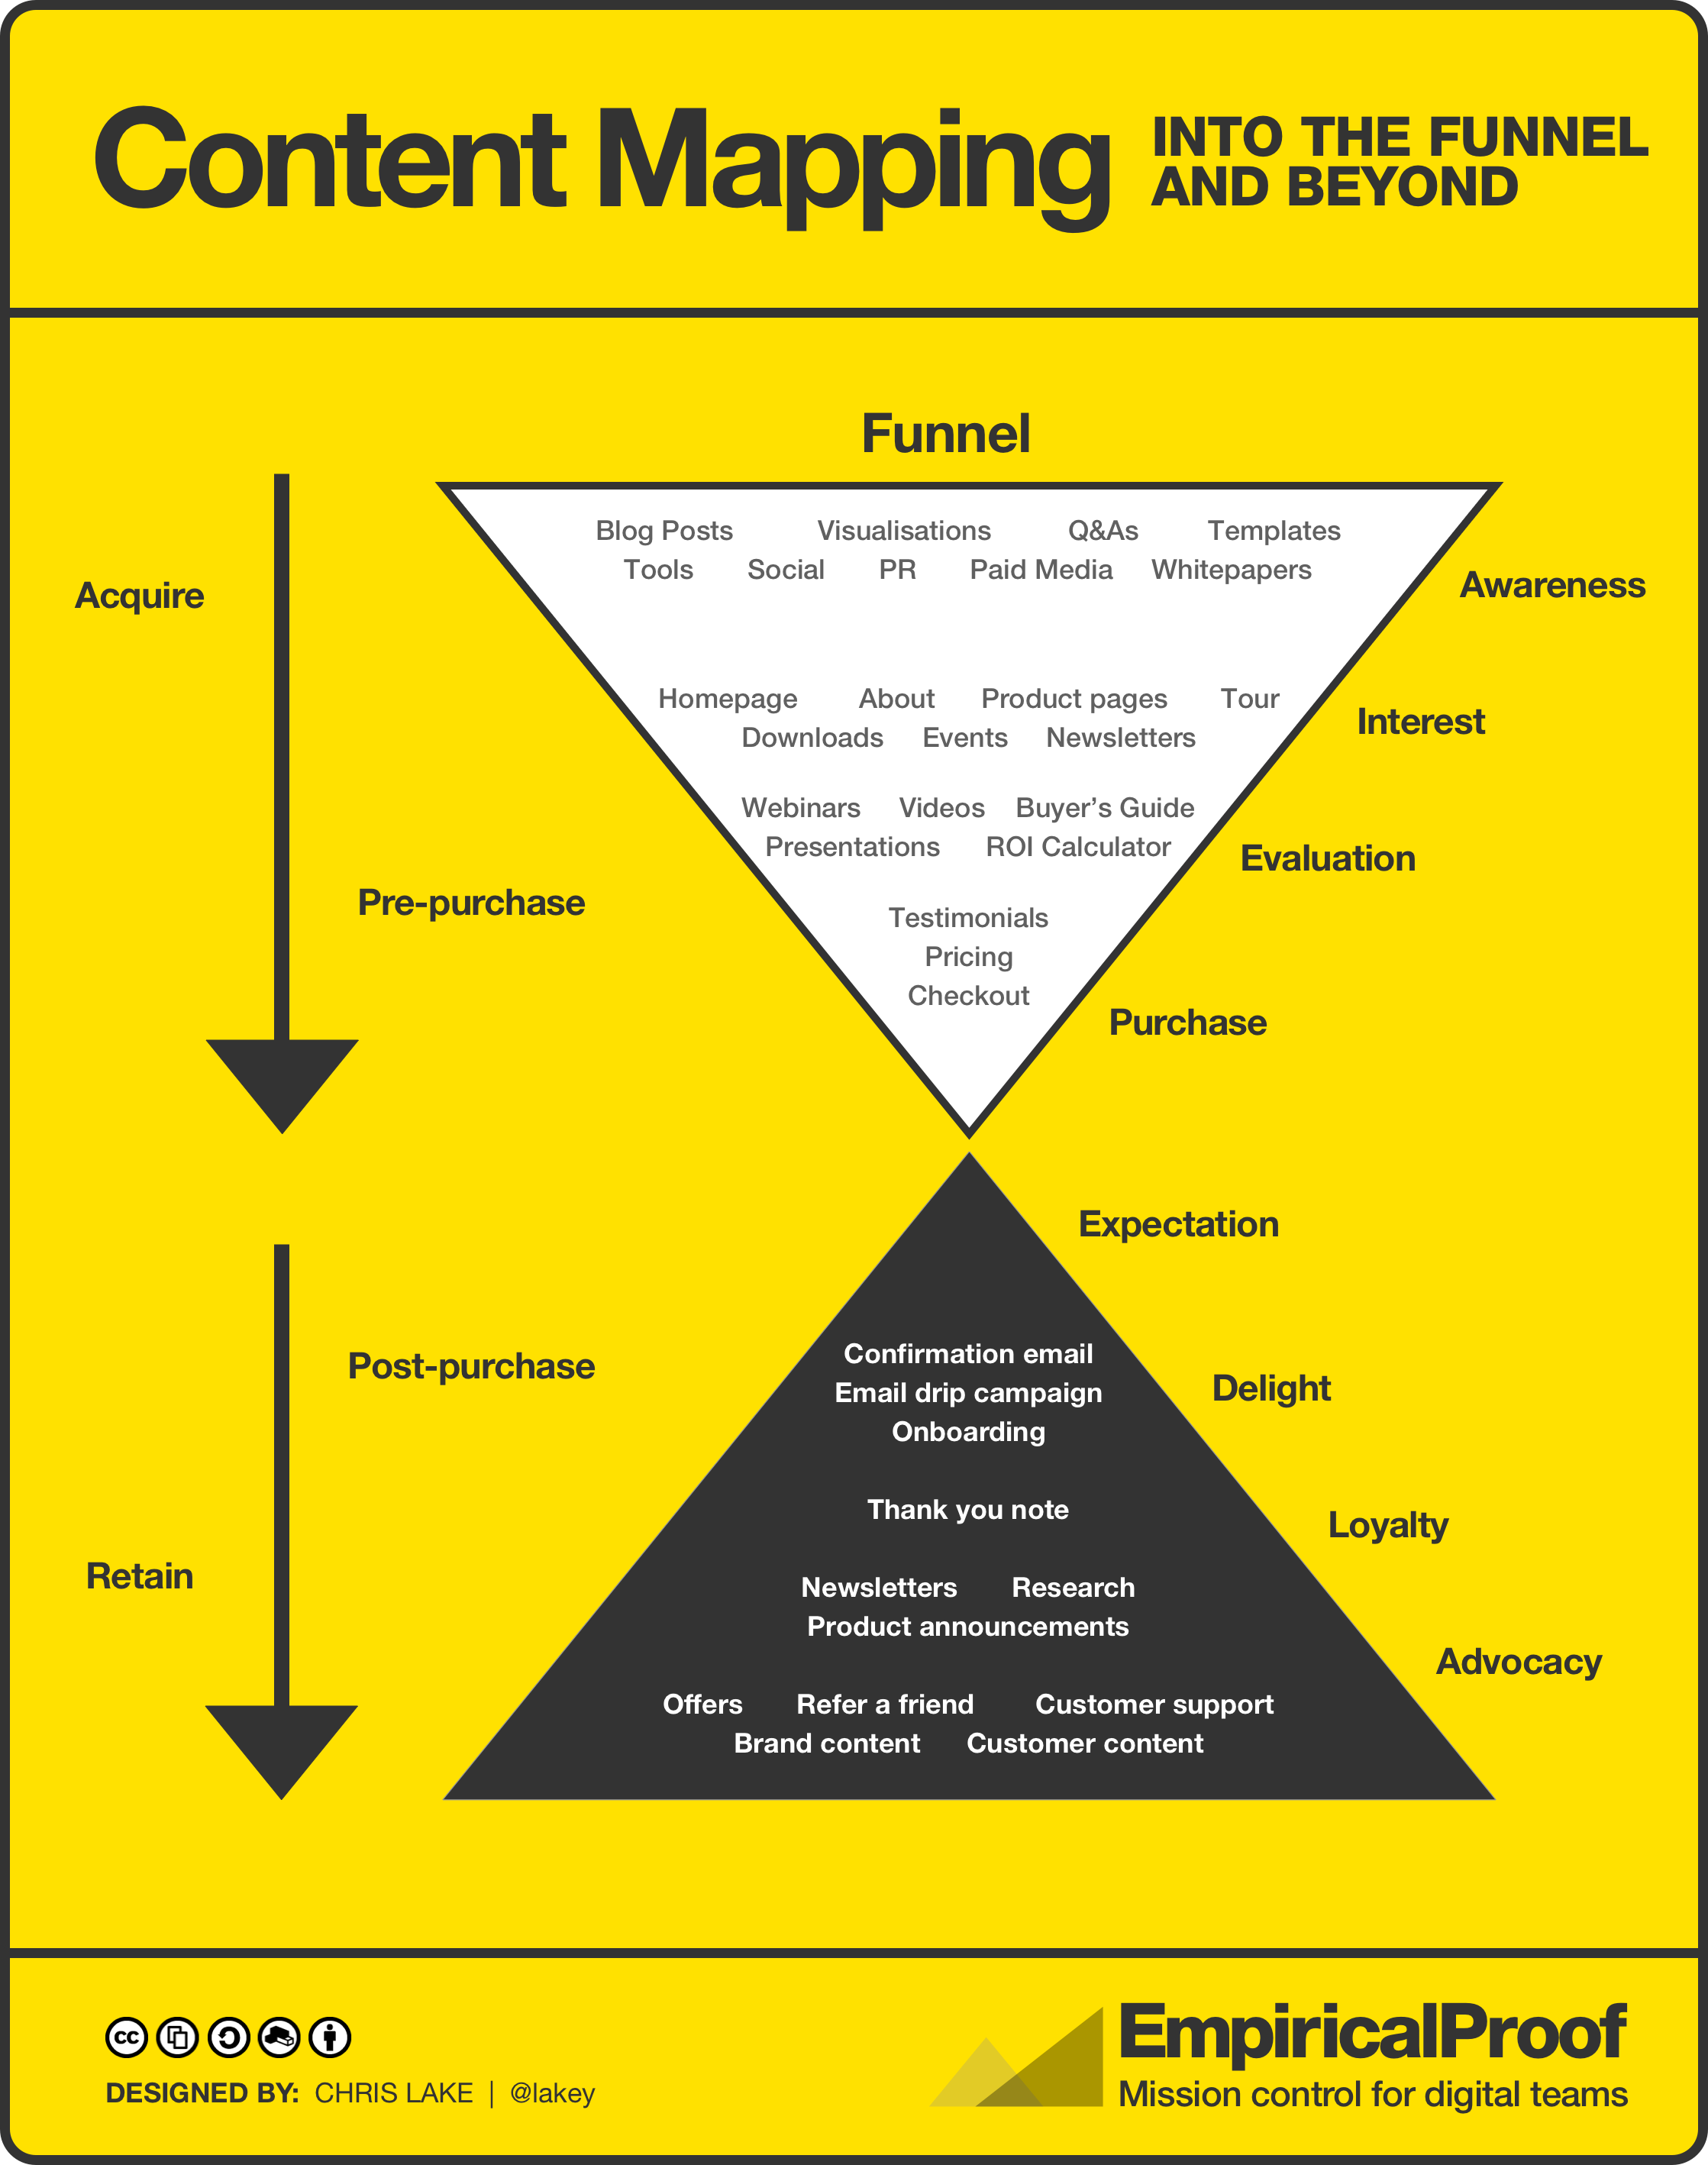 Content mapping - funnel